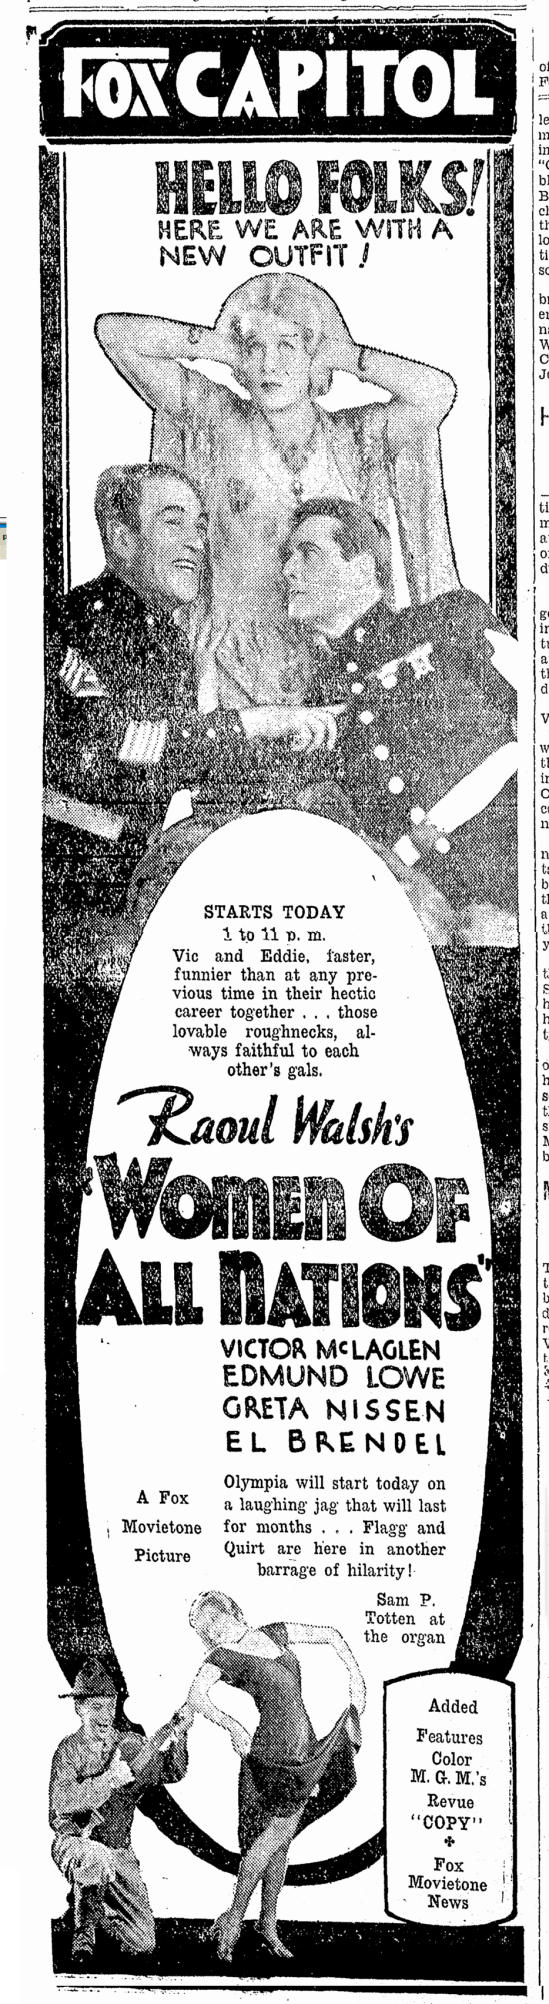 Women Of All Nations, Morning Olympian, June 14, 1931